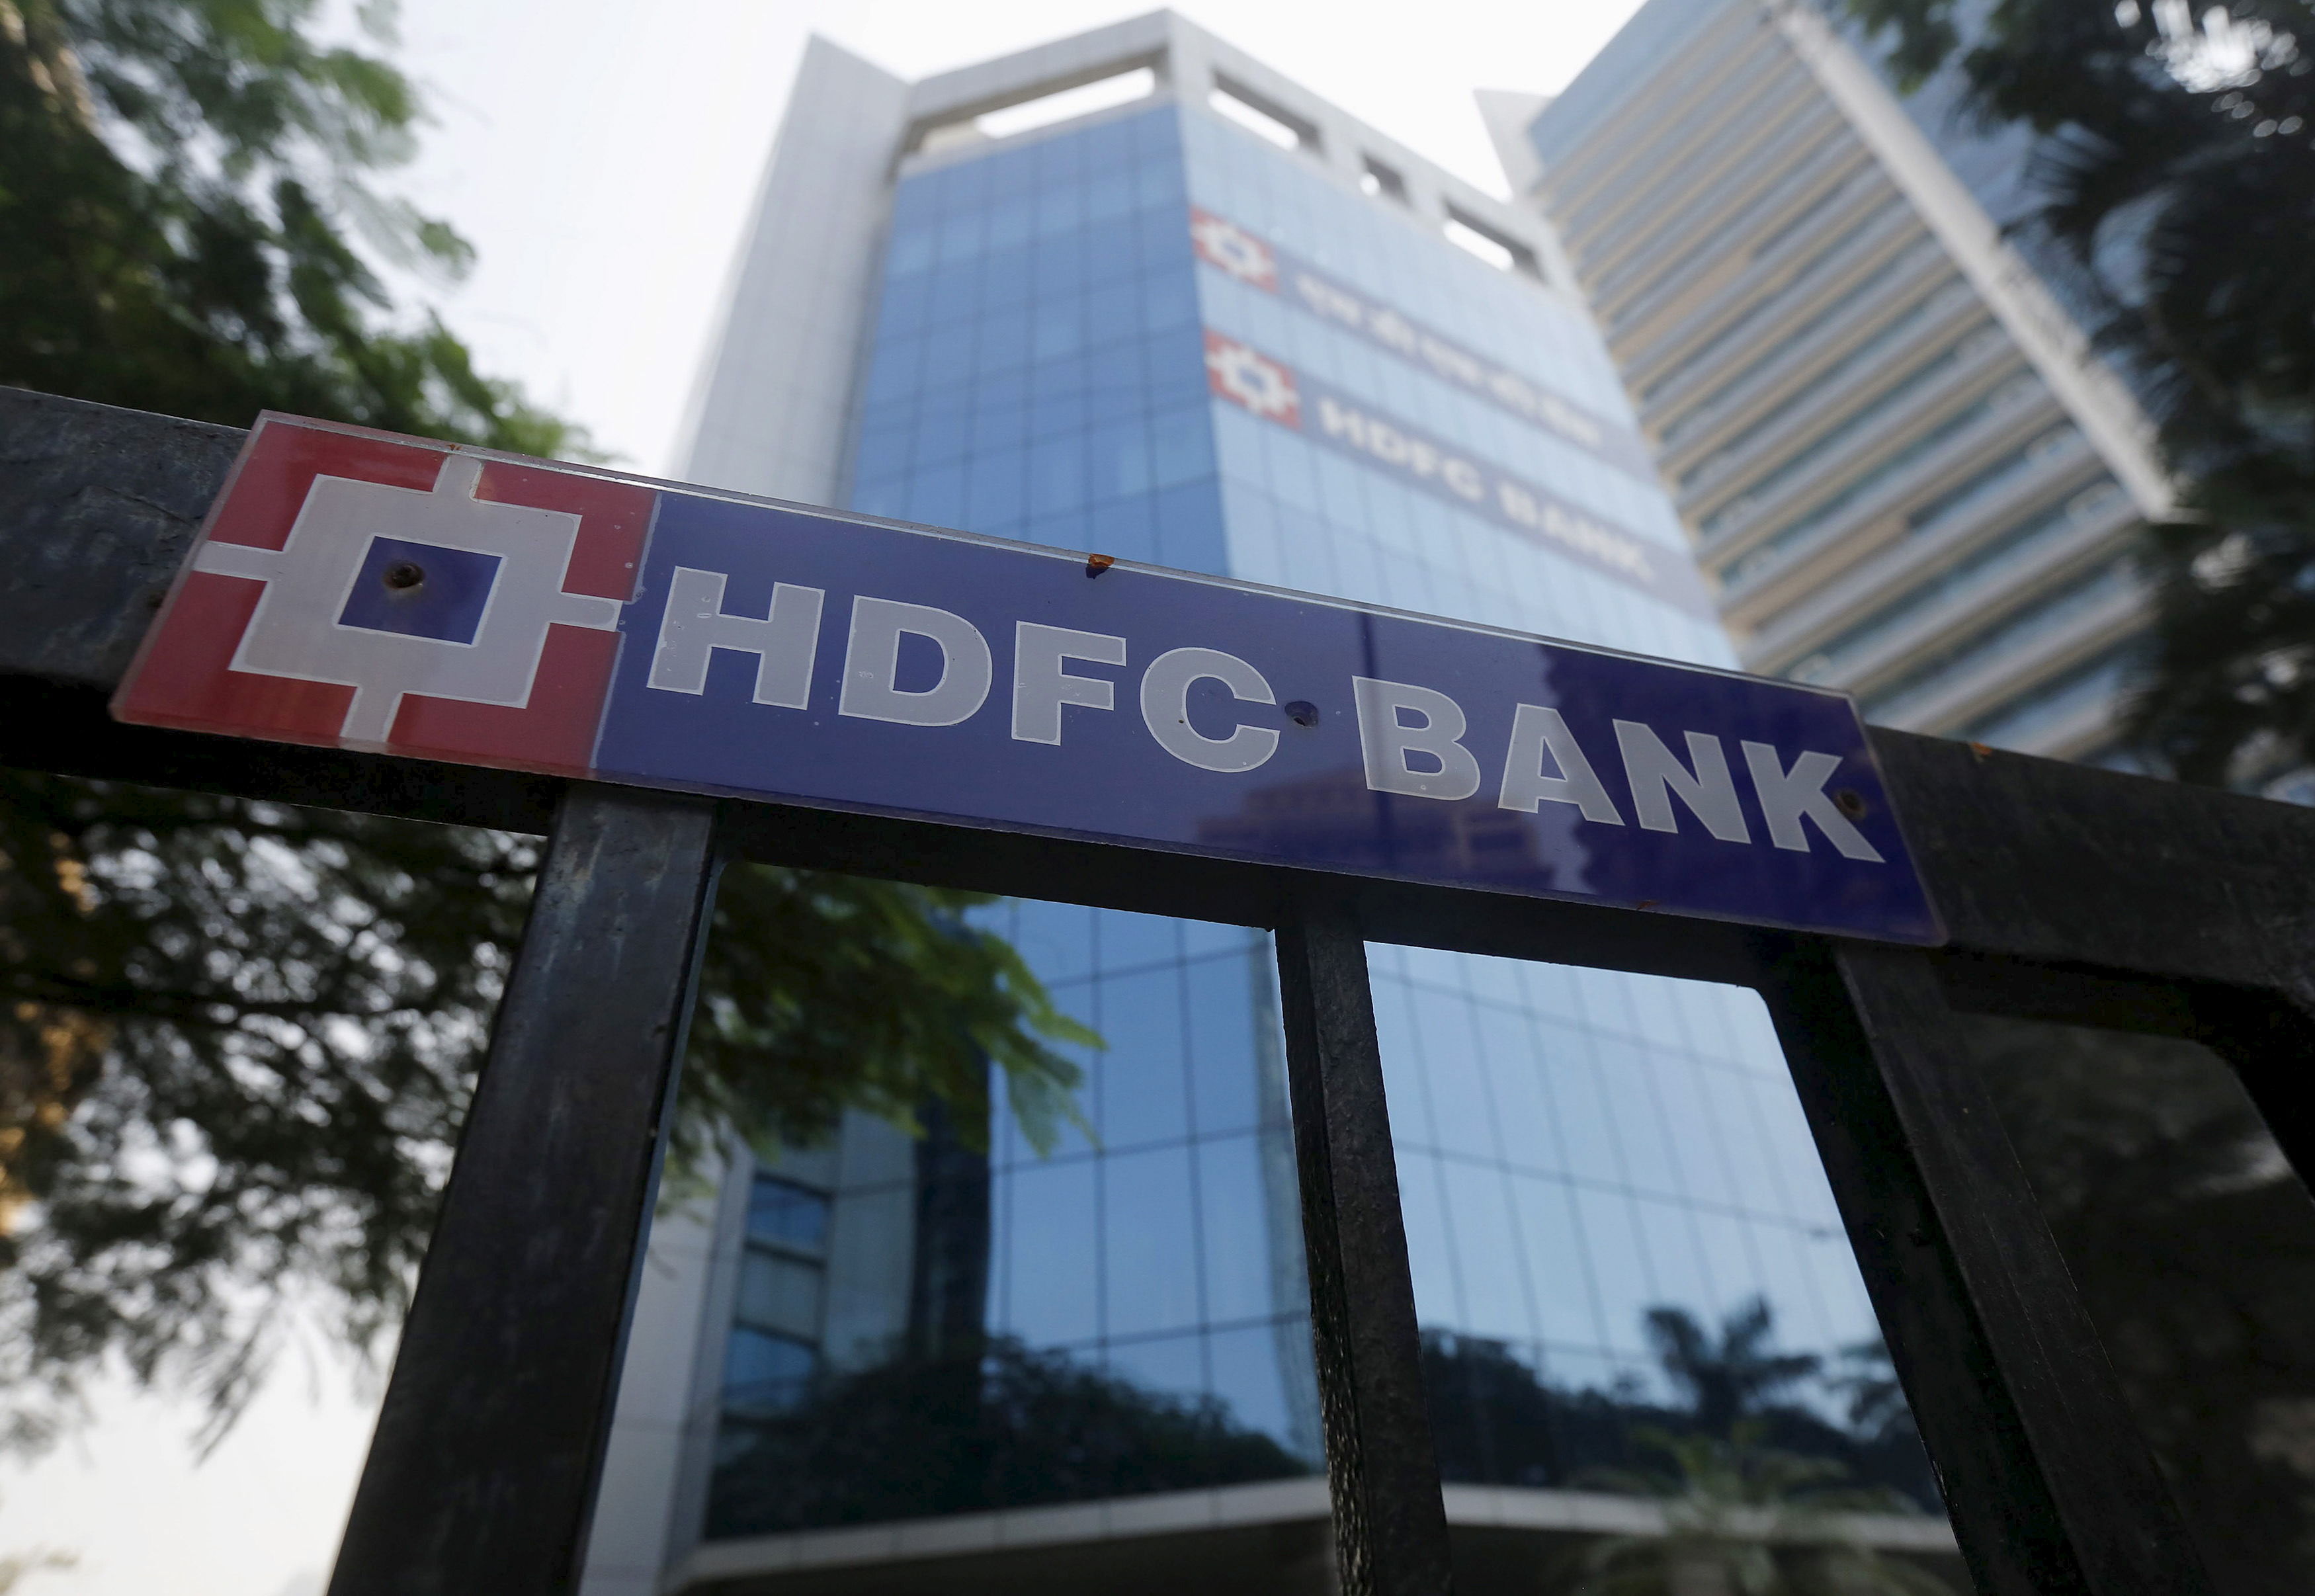 The headquarters of India's HDFC bank is pictured in Mumbai, India, December 4, 2015. To match interview HDFC BANK-OUTLOOK/                  REUTERS/Shailesh Andrade